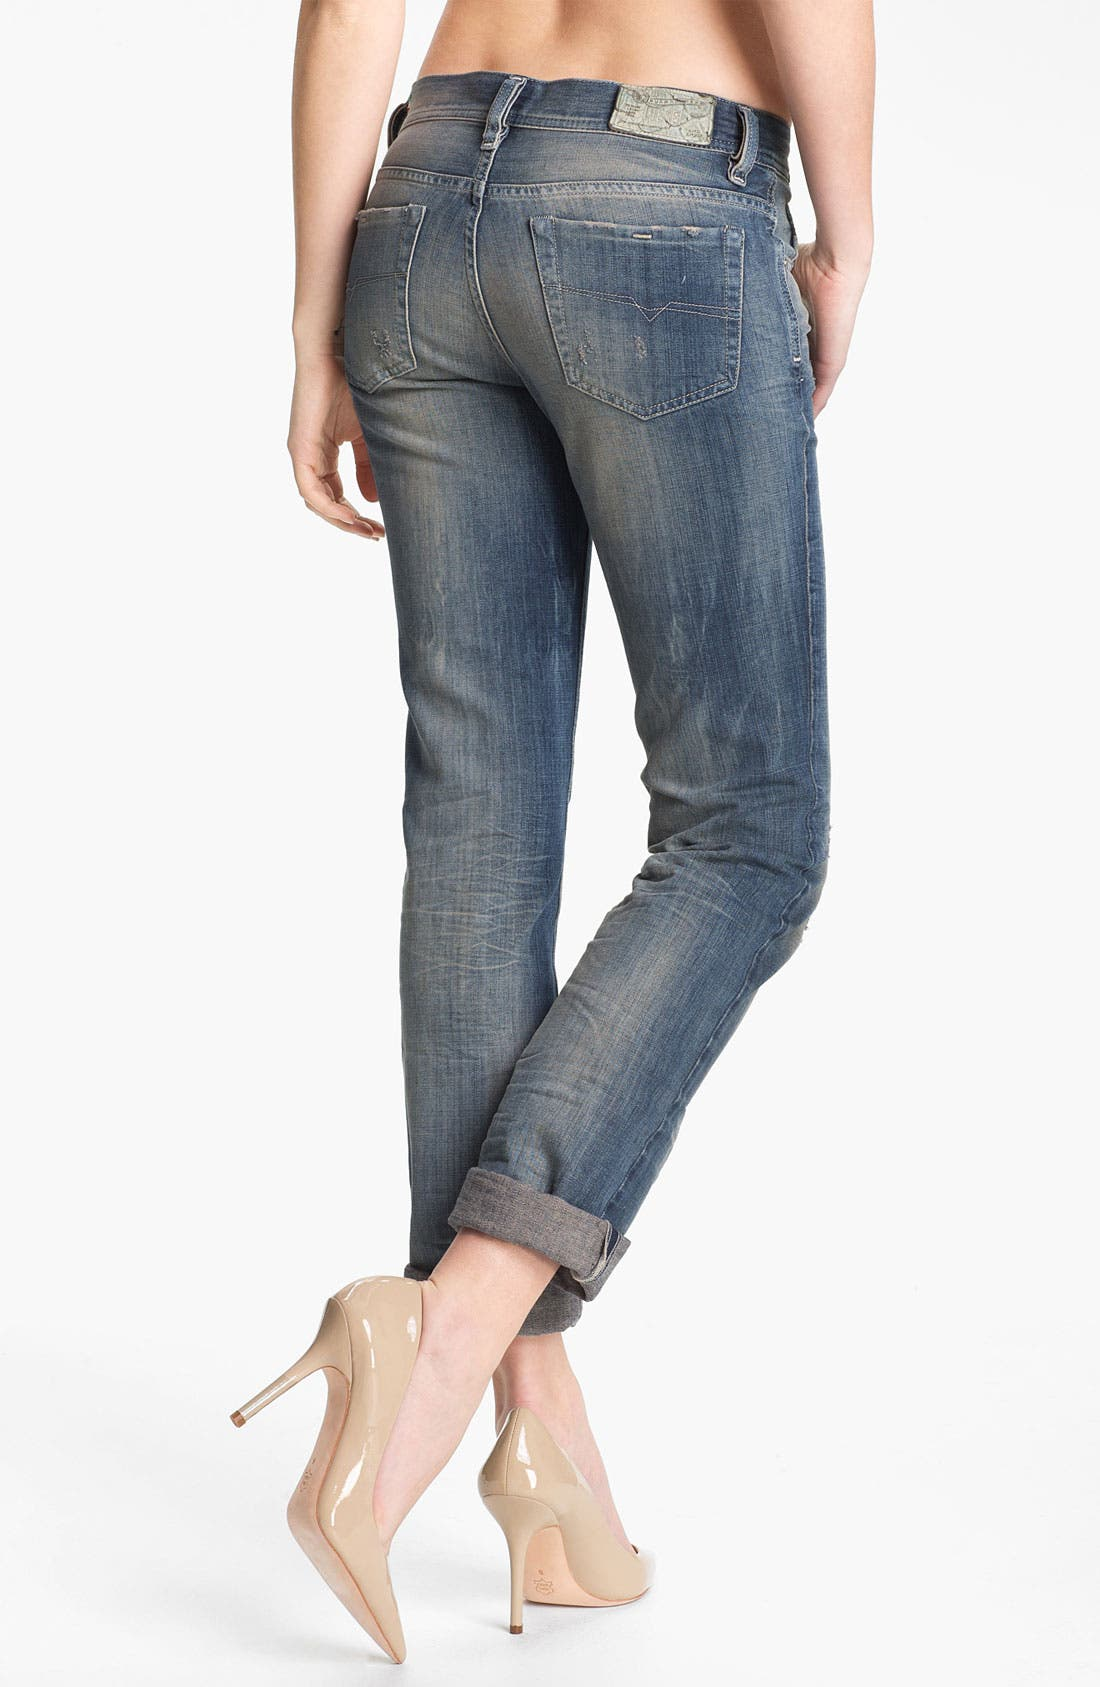 Alternate Image 1 Selected - DIESEL® 'Faithlegg' Distressed Denim Boyfriend Jeans (Denim Distressed)